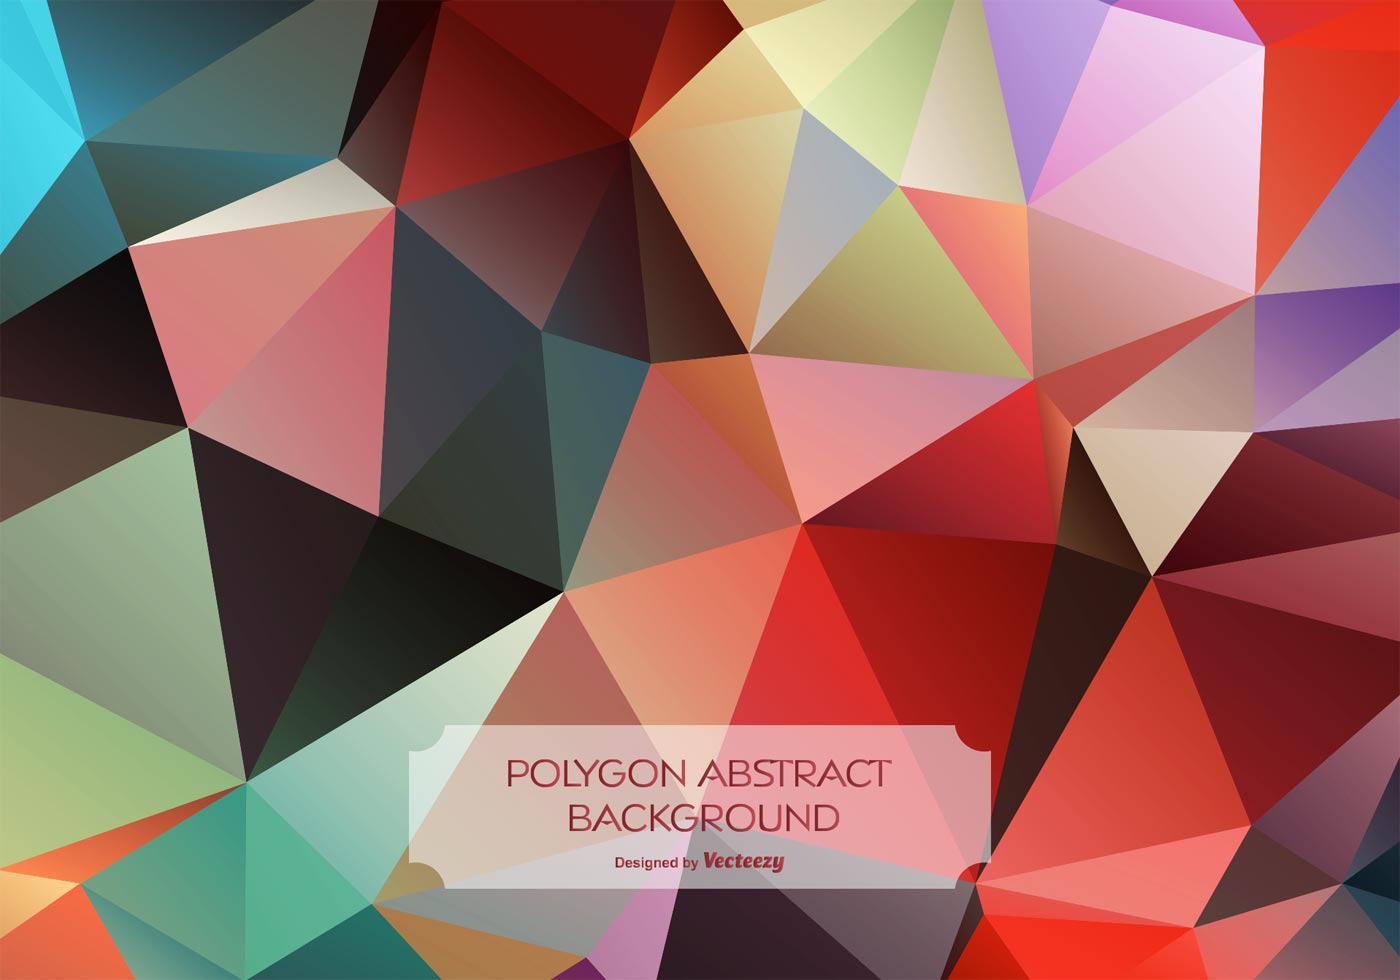 Colorful Abstract Polygon Background - Download Free ...